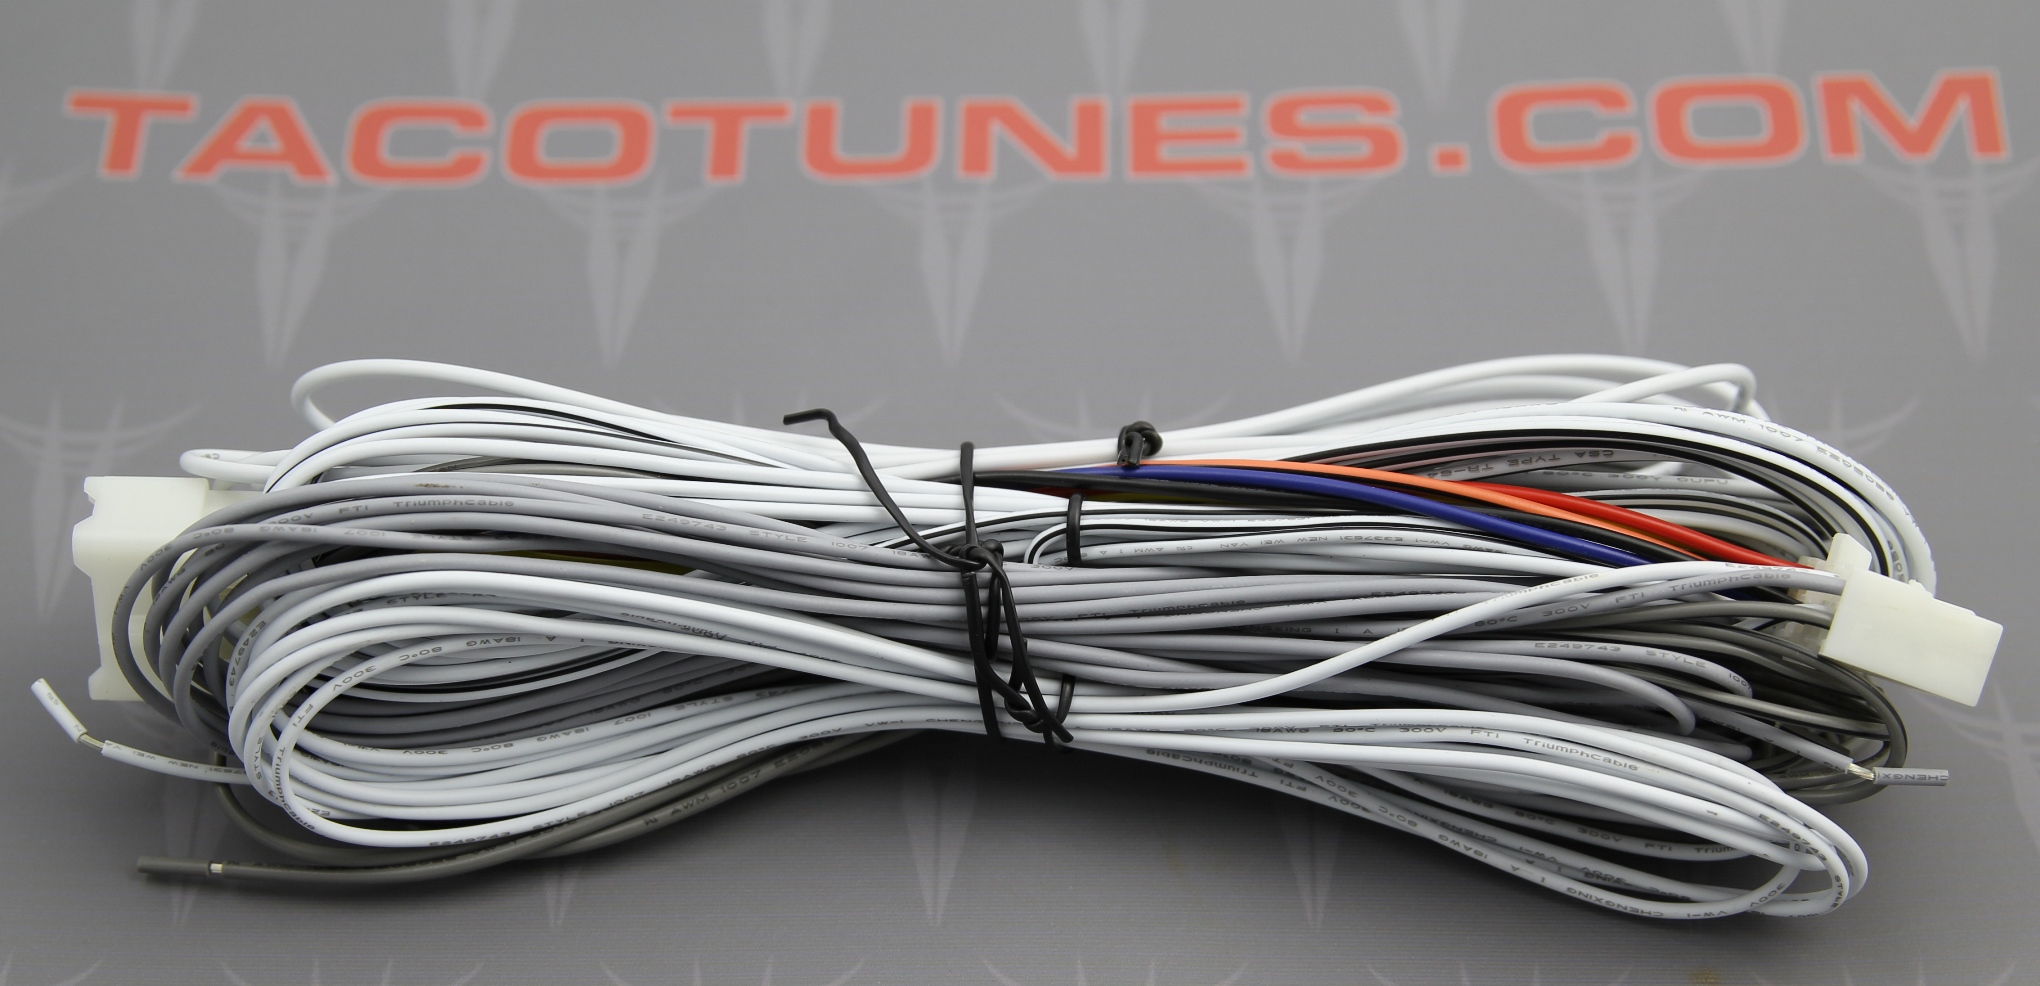 10 pin wiring harness  Pin Wire Harness Kia Homelink on